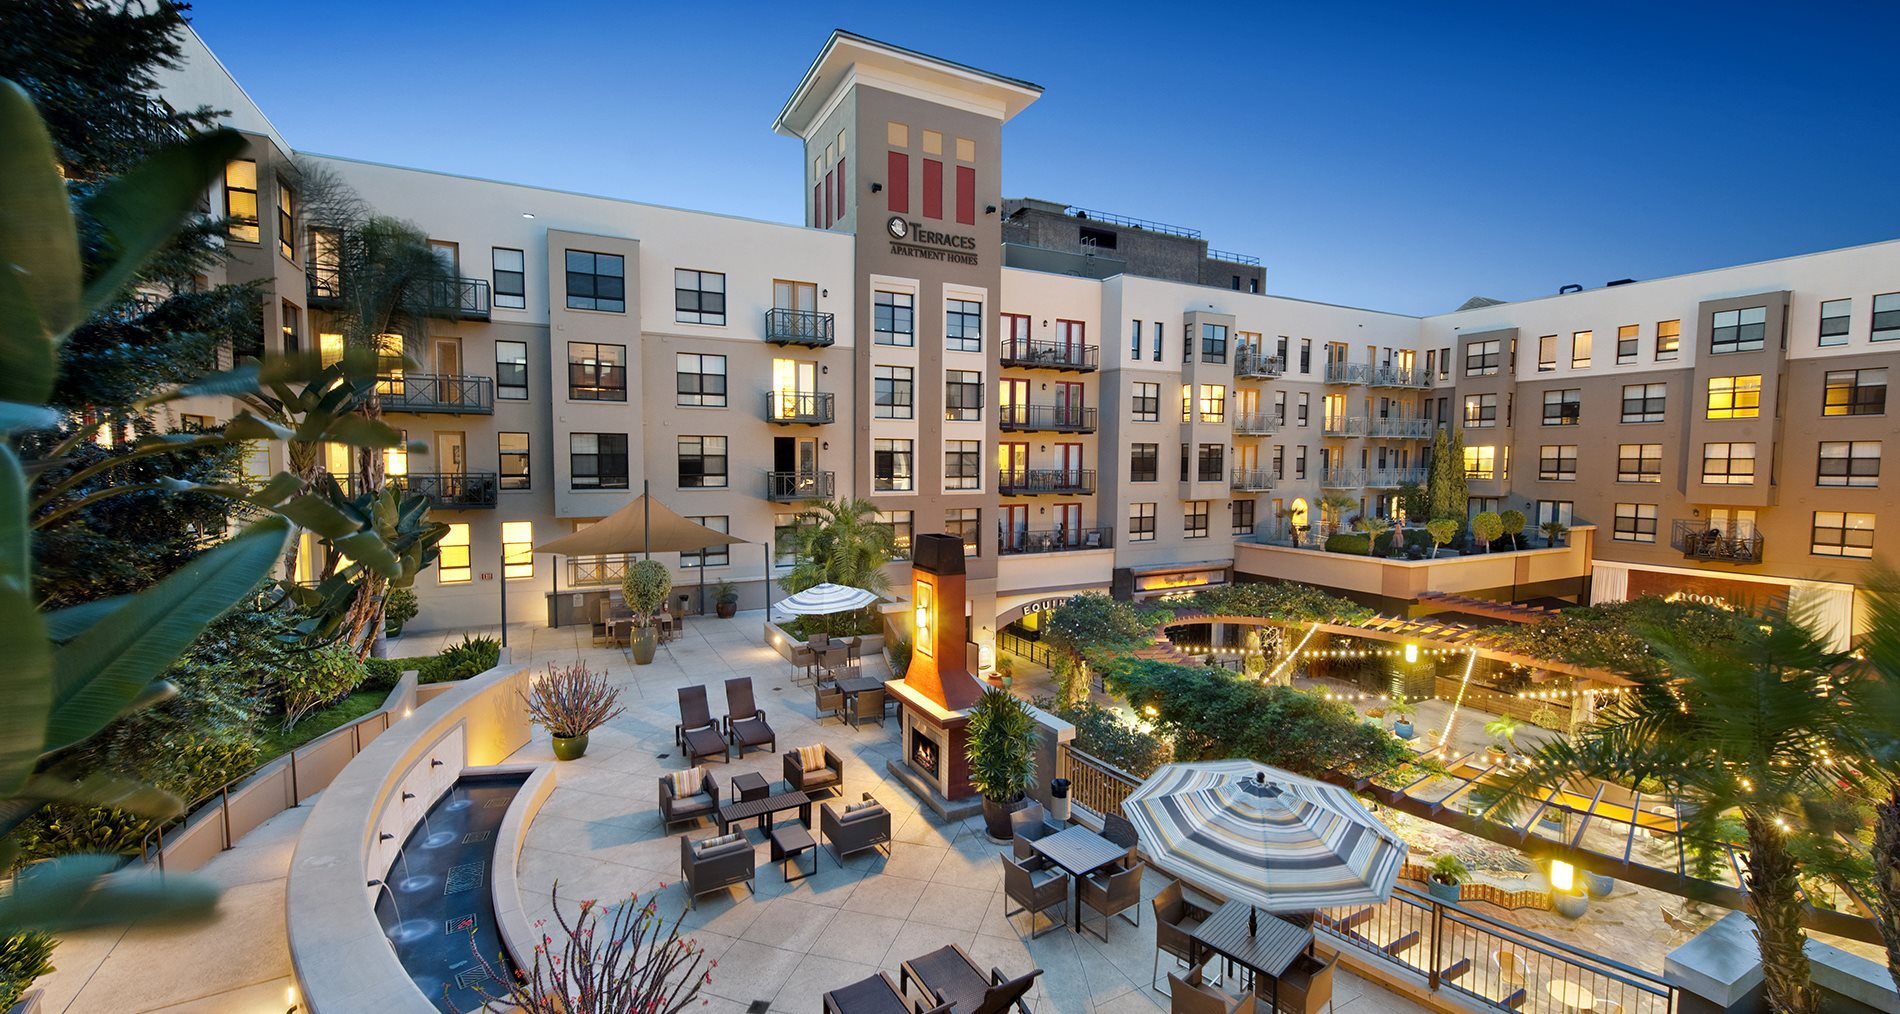 Outdoor Terraces with BBQ and Fireplace at Terraces at Paseo Colorado, Pasadena, CA, 91101